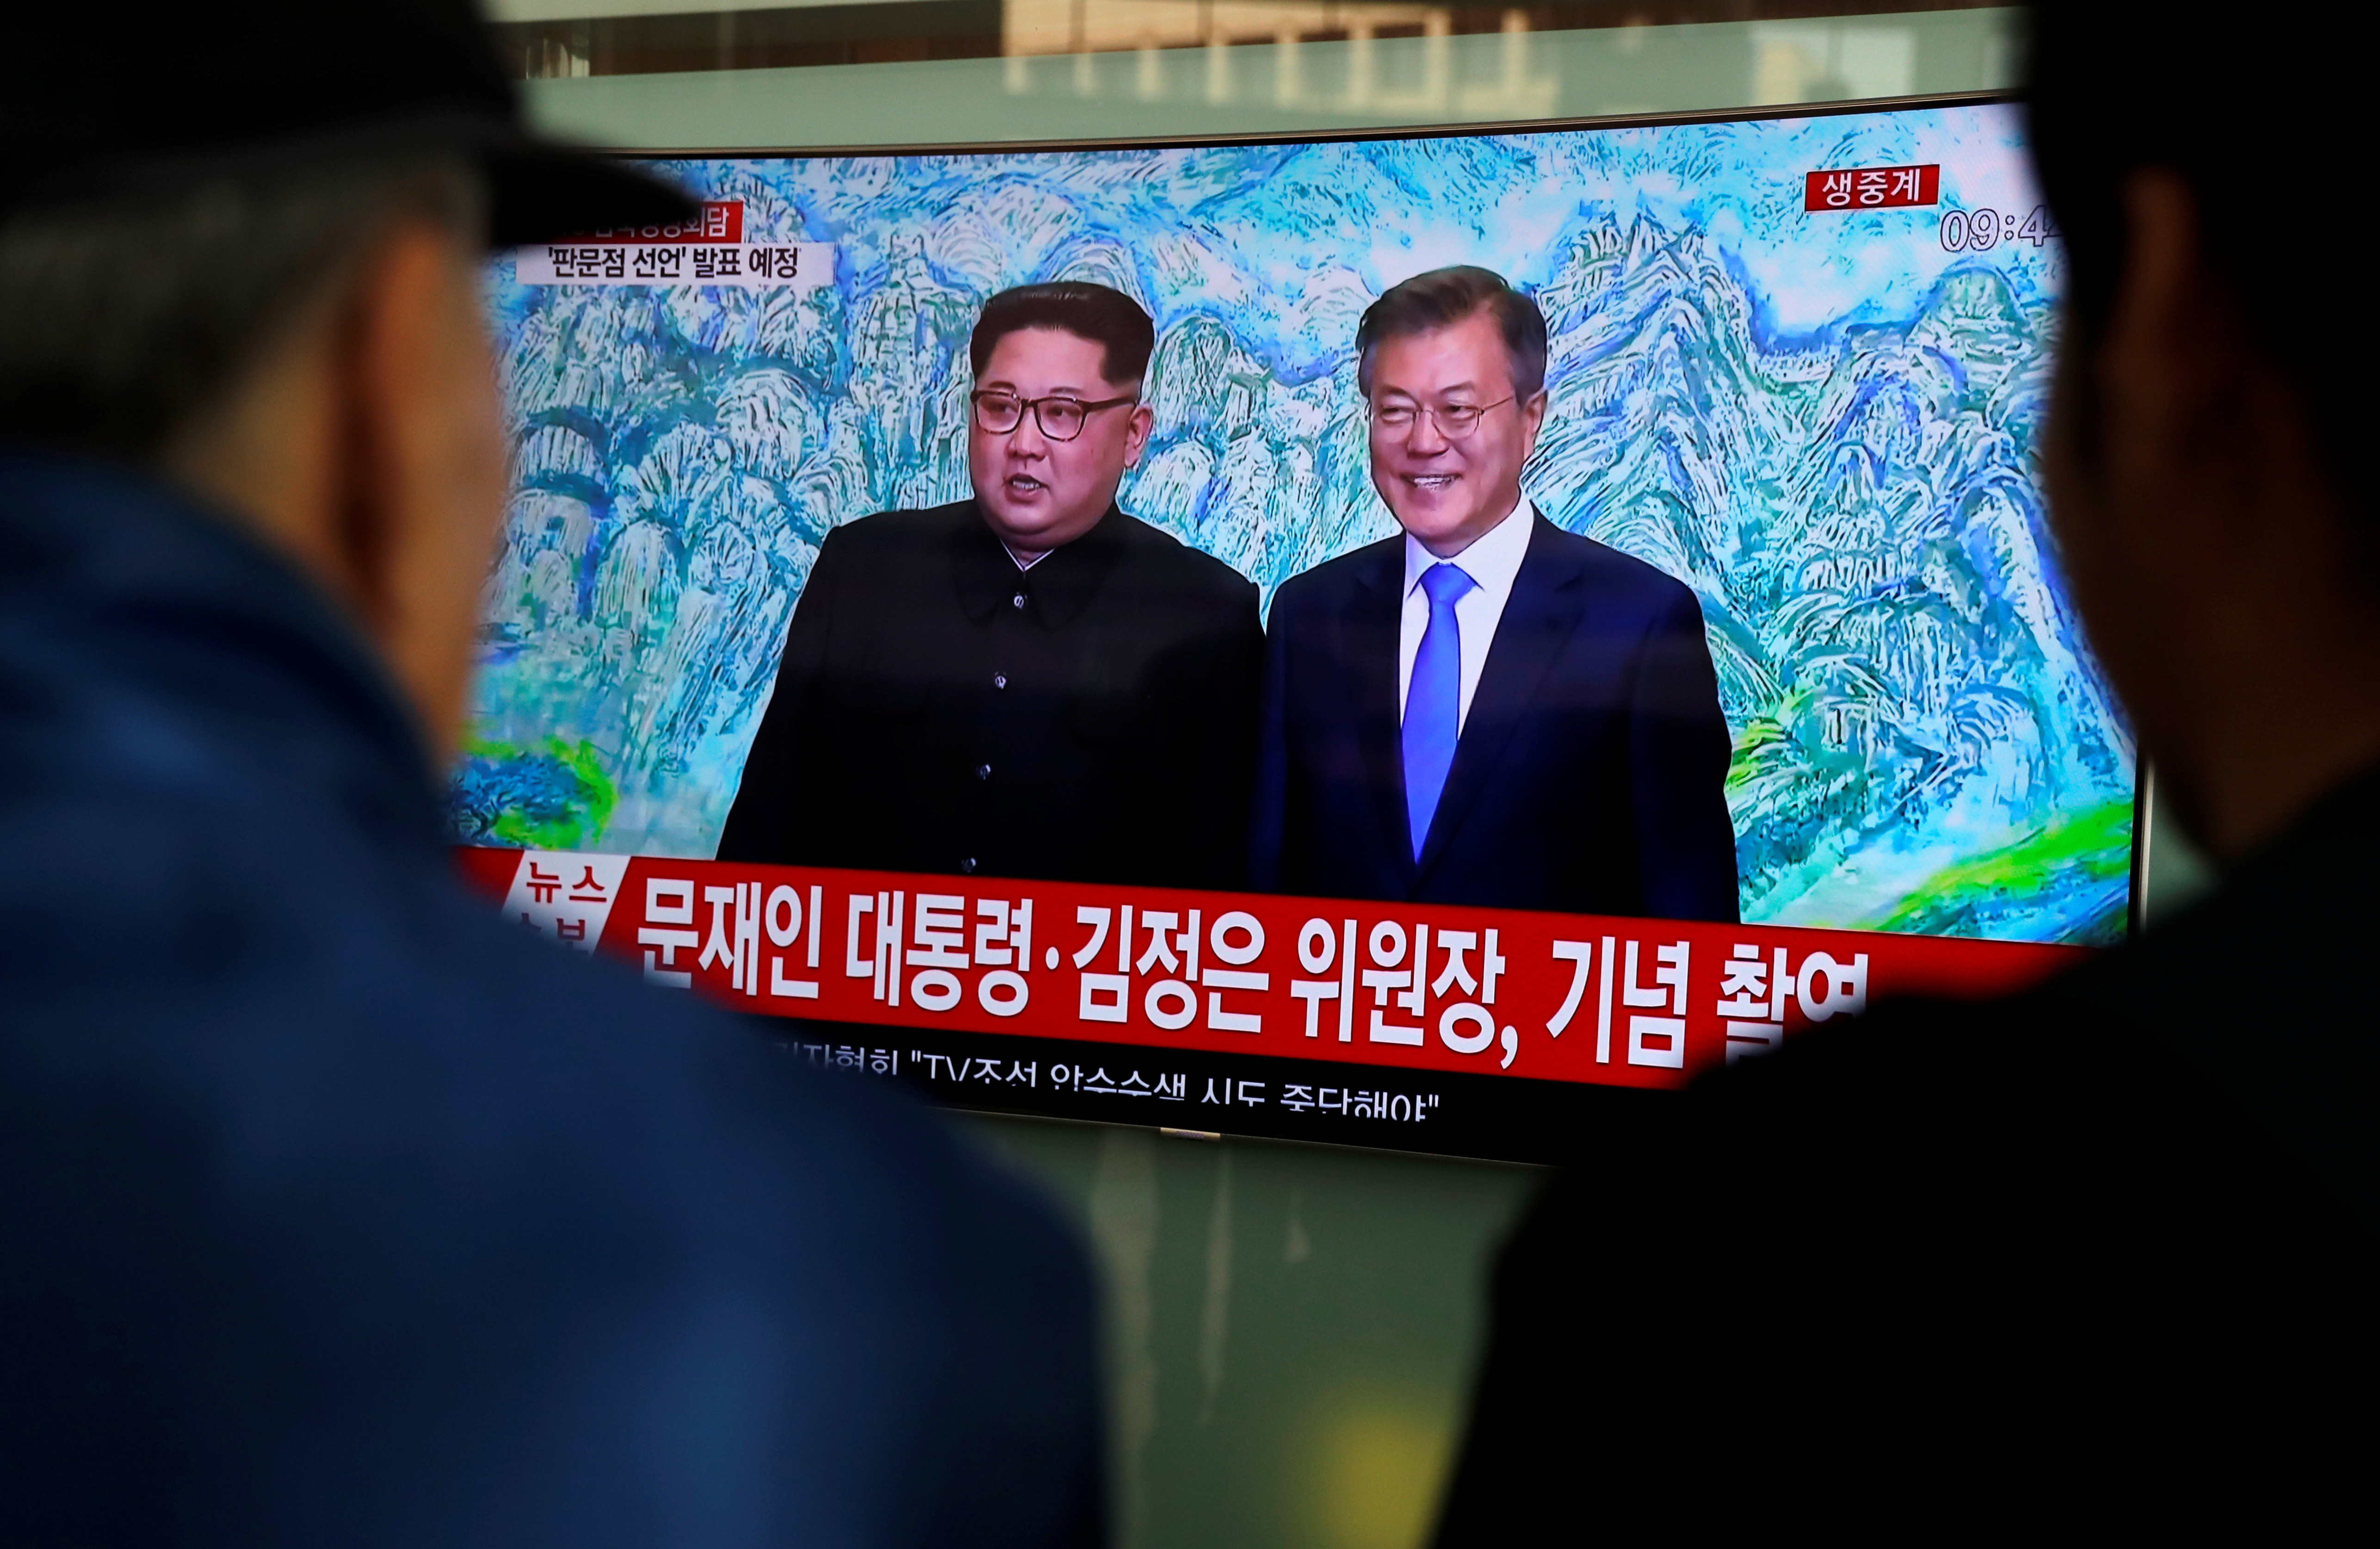 People watch a TV showing a live broadcast of the inter-Korean summit, at a railway station in Seoul, South Korea, April 27, 2018 (Reuters/Jorge Silva)